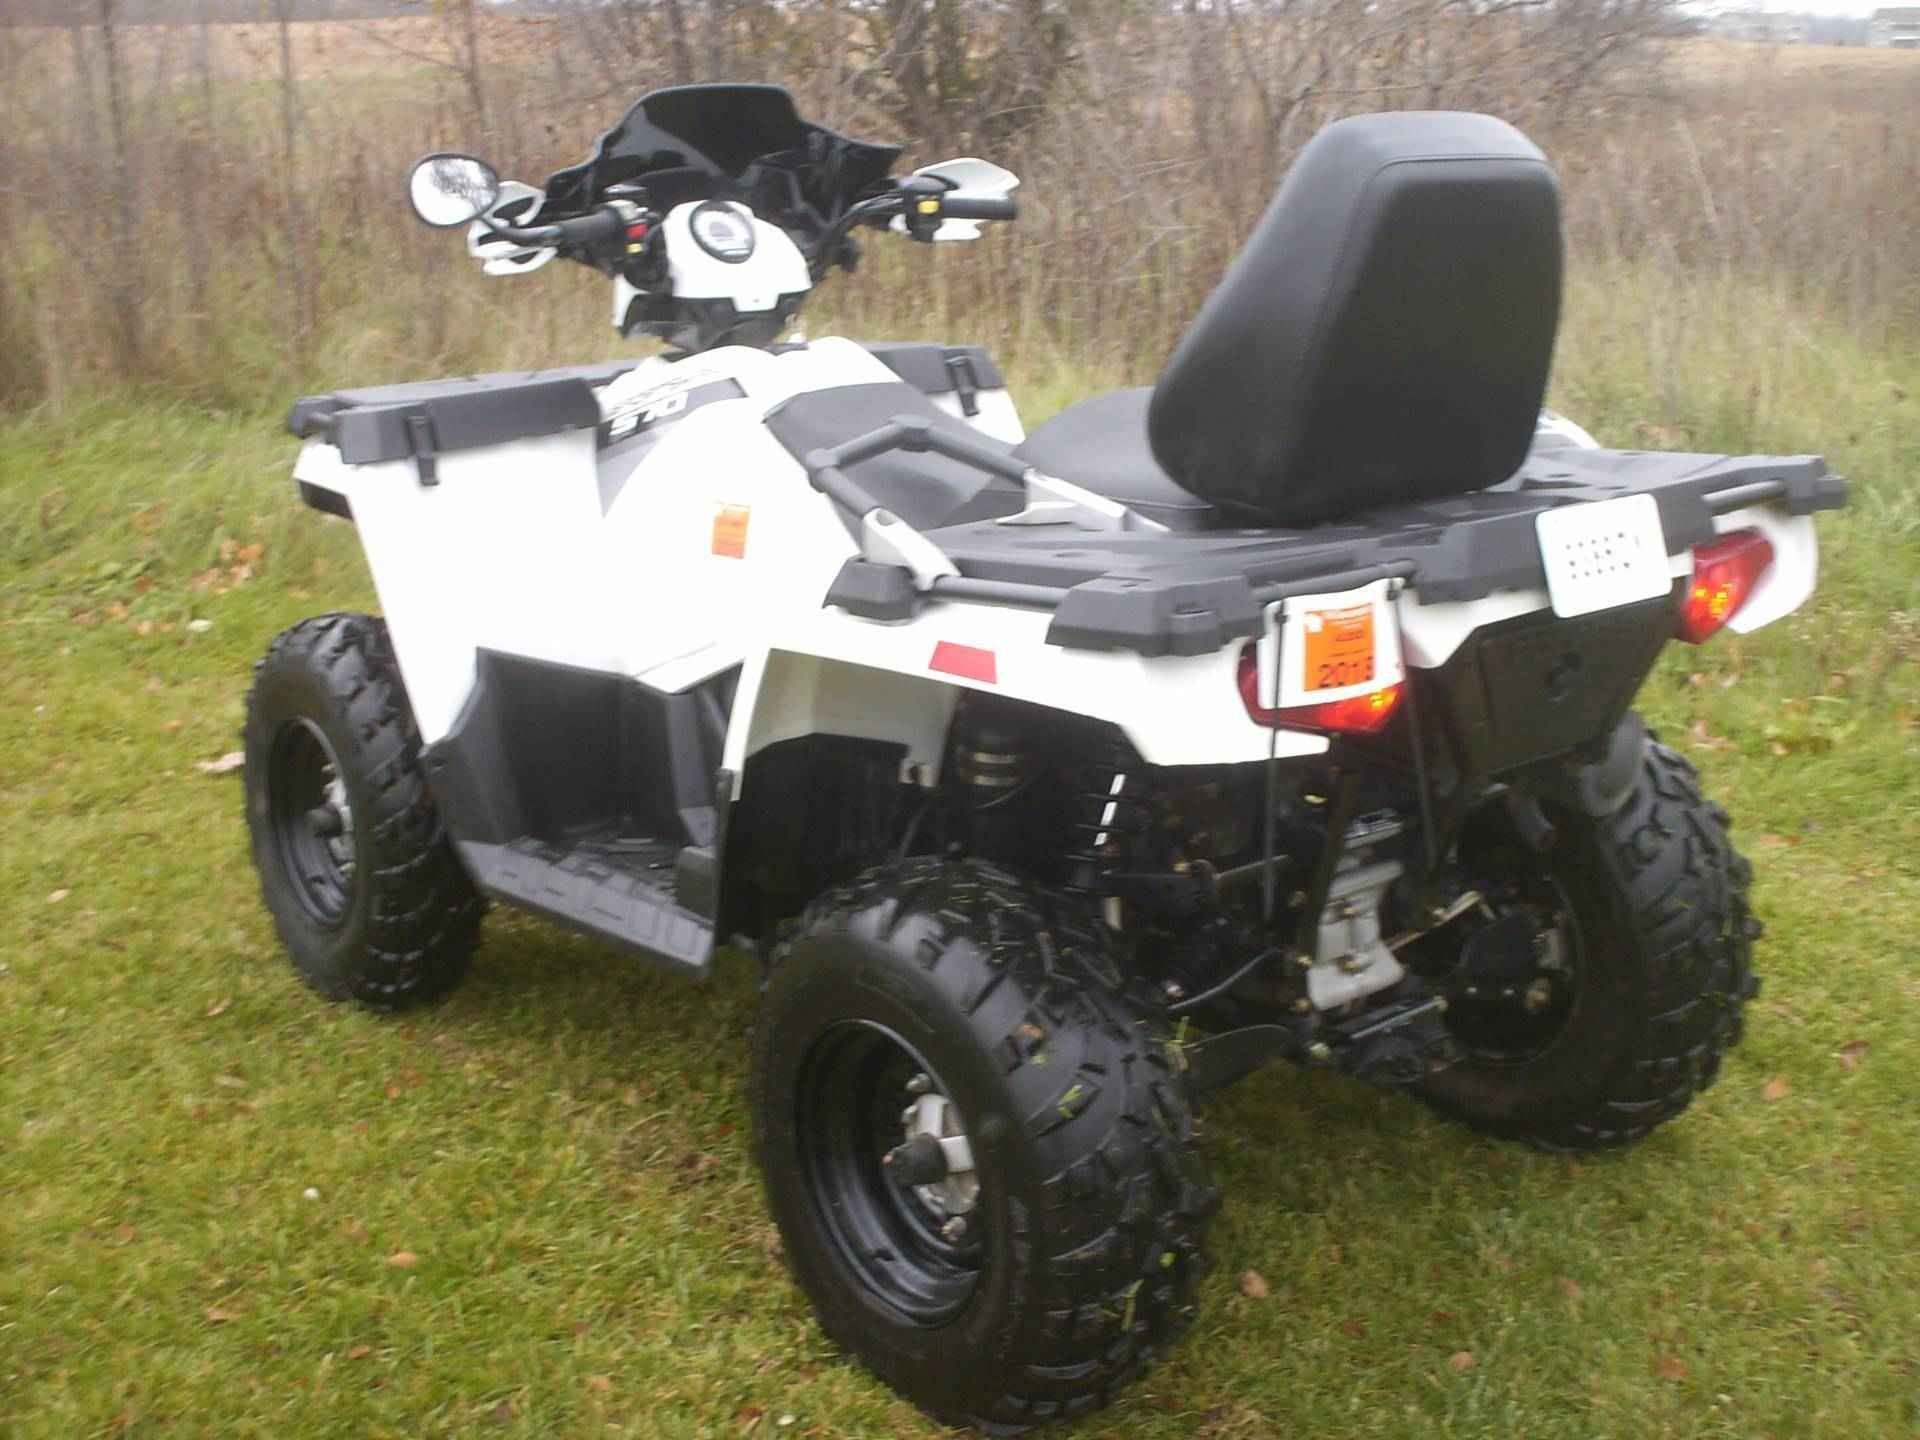 Used 2014 Polaris Sportsman Touring 570 Efi Atvs For Sale In Wisconsin Nice Clean 570 Efi Touring With Added Shield Handgua Touring Electric Skateboard Atv